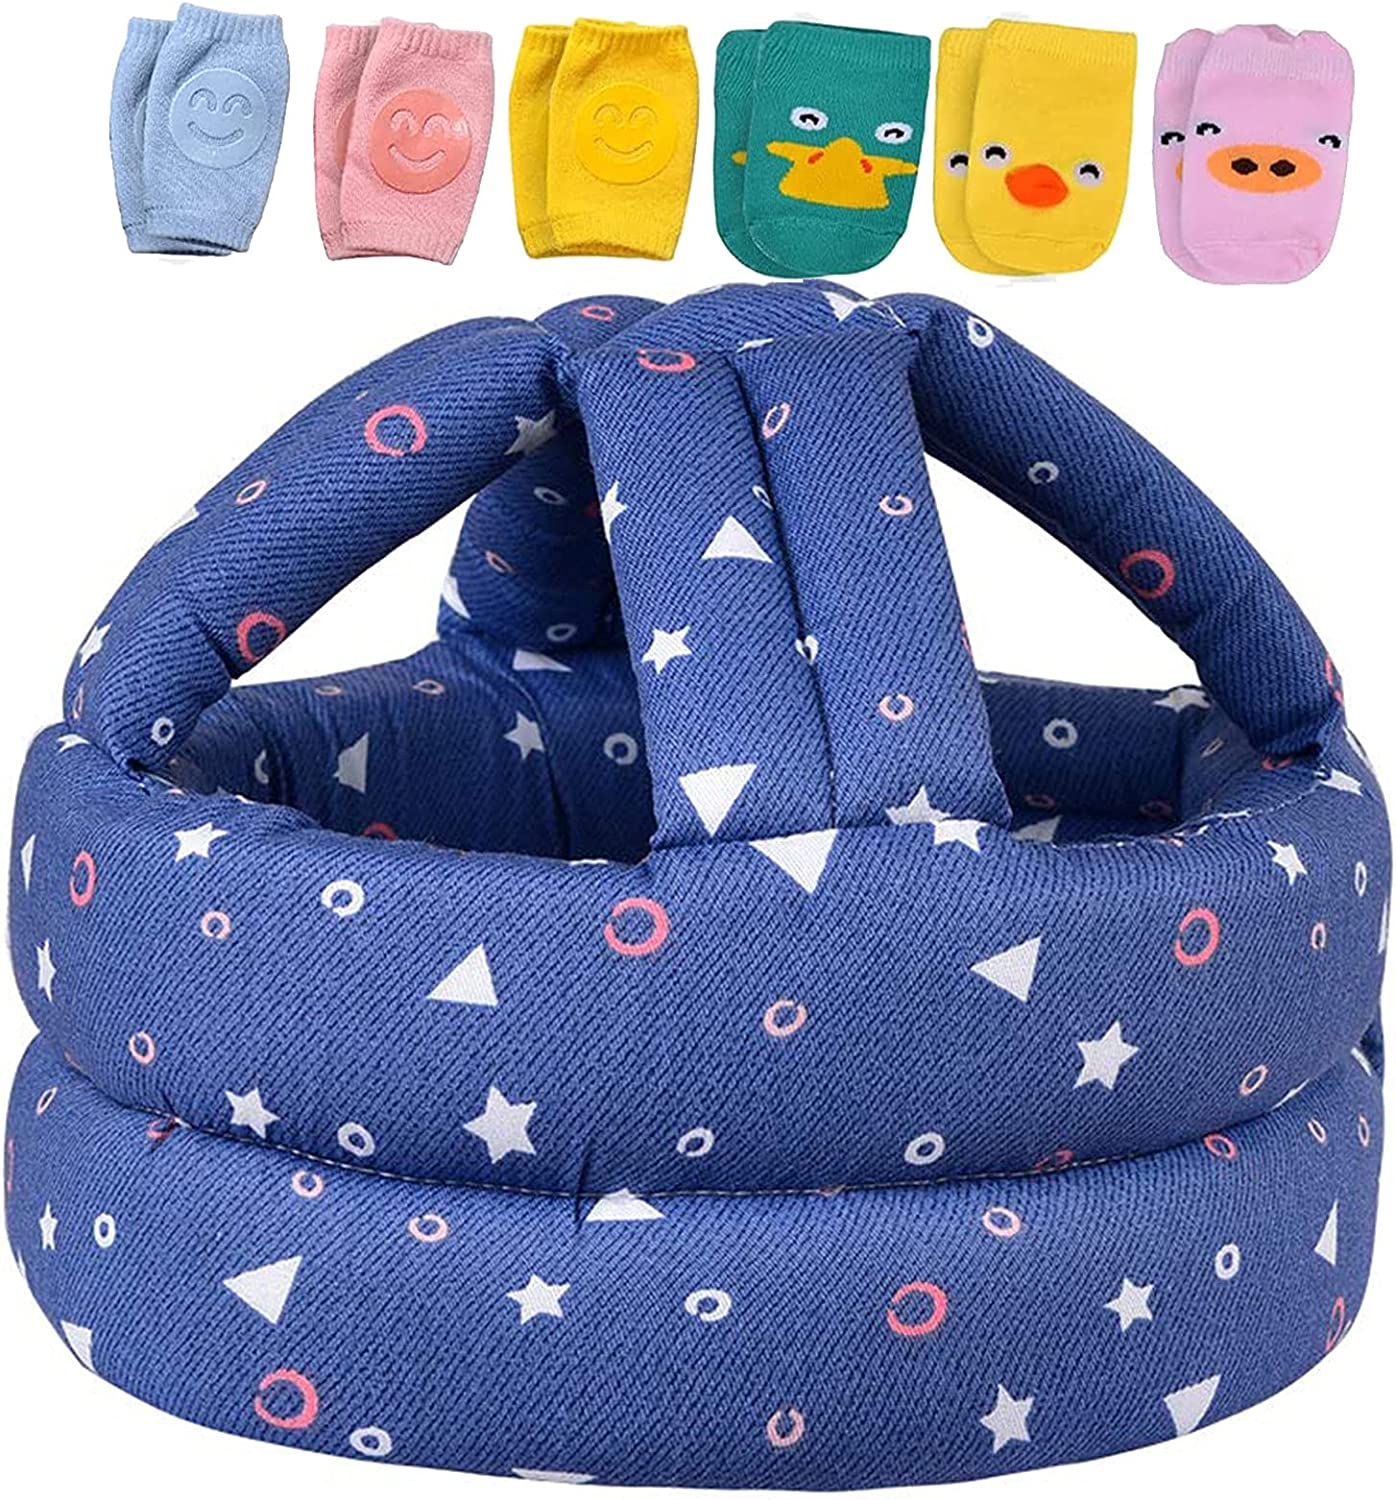 Baby Safety Helmet, Infant Baby Head Protector for Crawling, Head Cushion Bumper Bonnet, Soft Headguard for Toddler Learning to Walk,Blue,Gray, Yellow